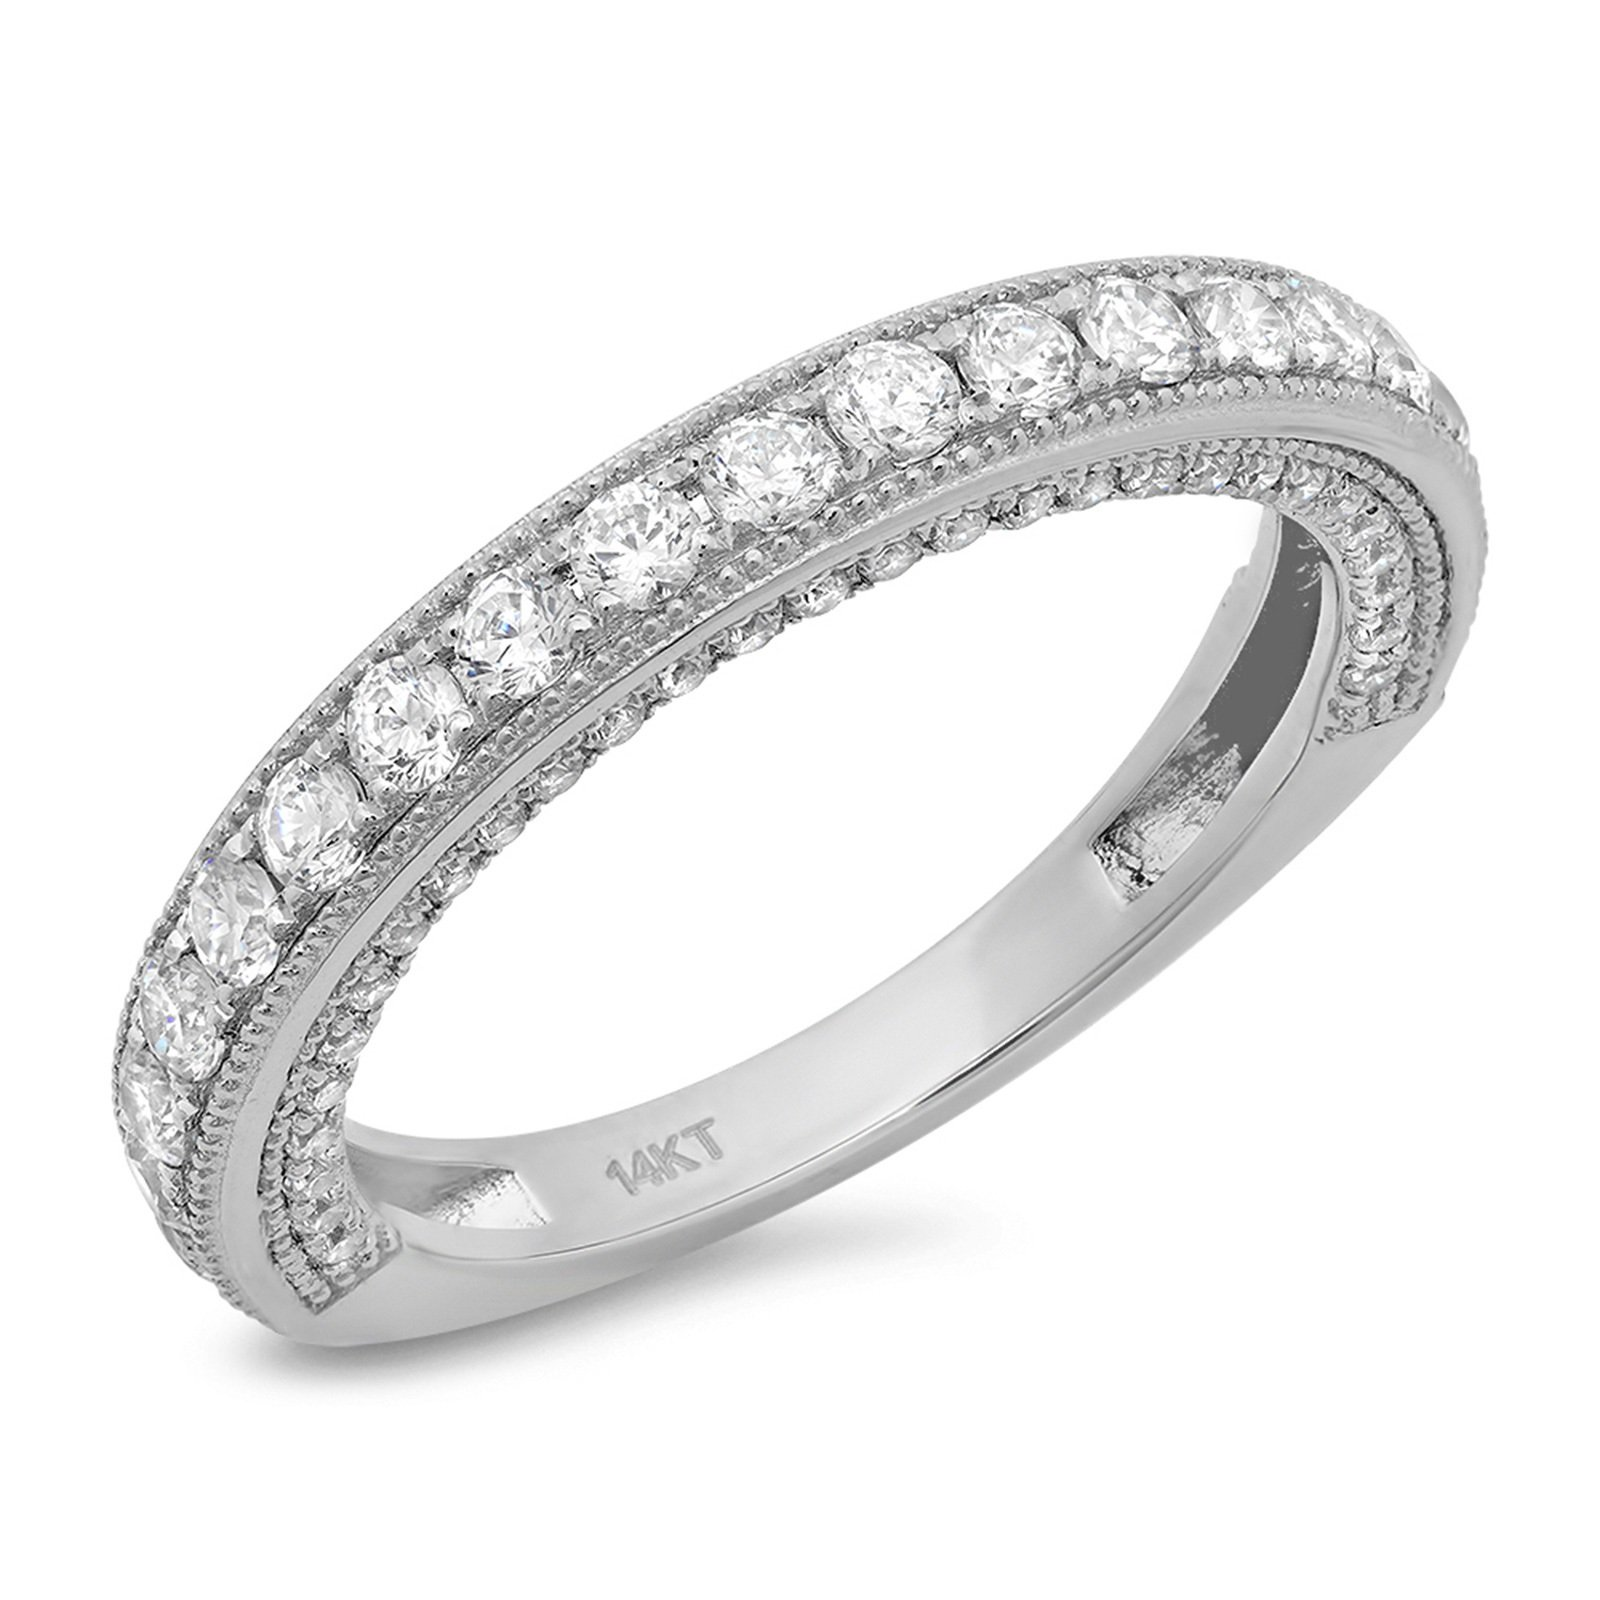 1.10 CT Round Cut CZ Pave Set Wedding Bridal Eternity Engagement Band Ring 14k White Gold, Size 8 by Clara Pucci (Image #1)